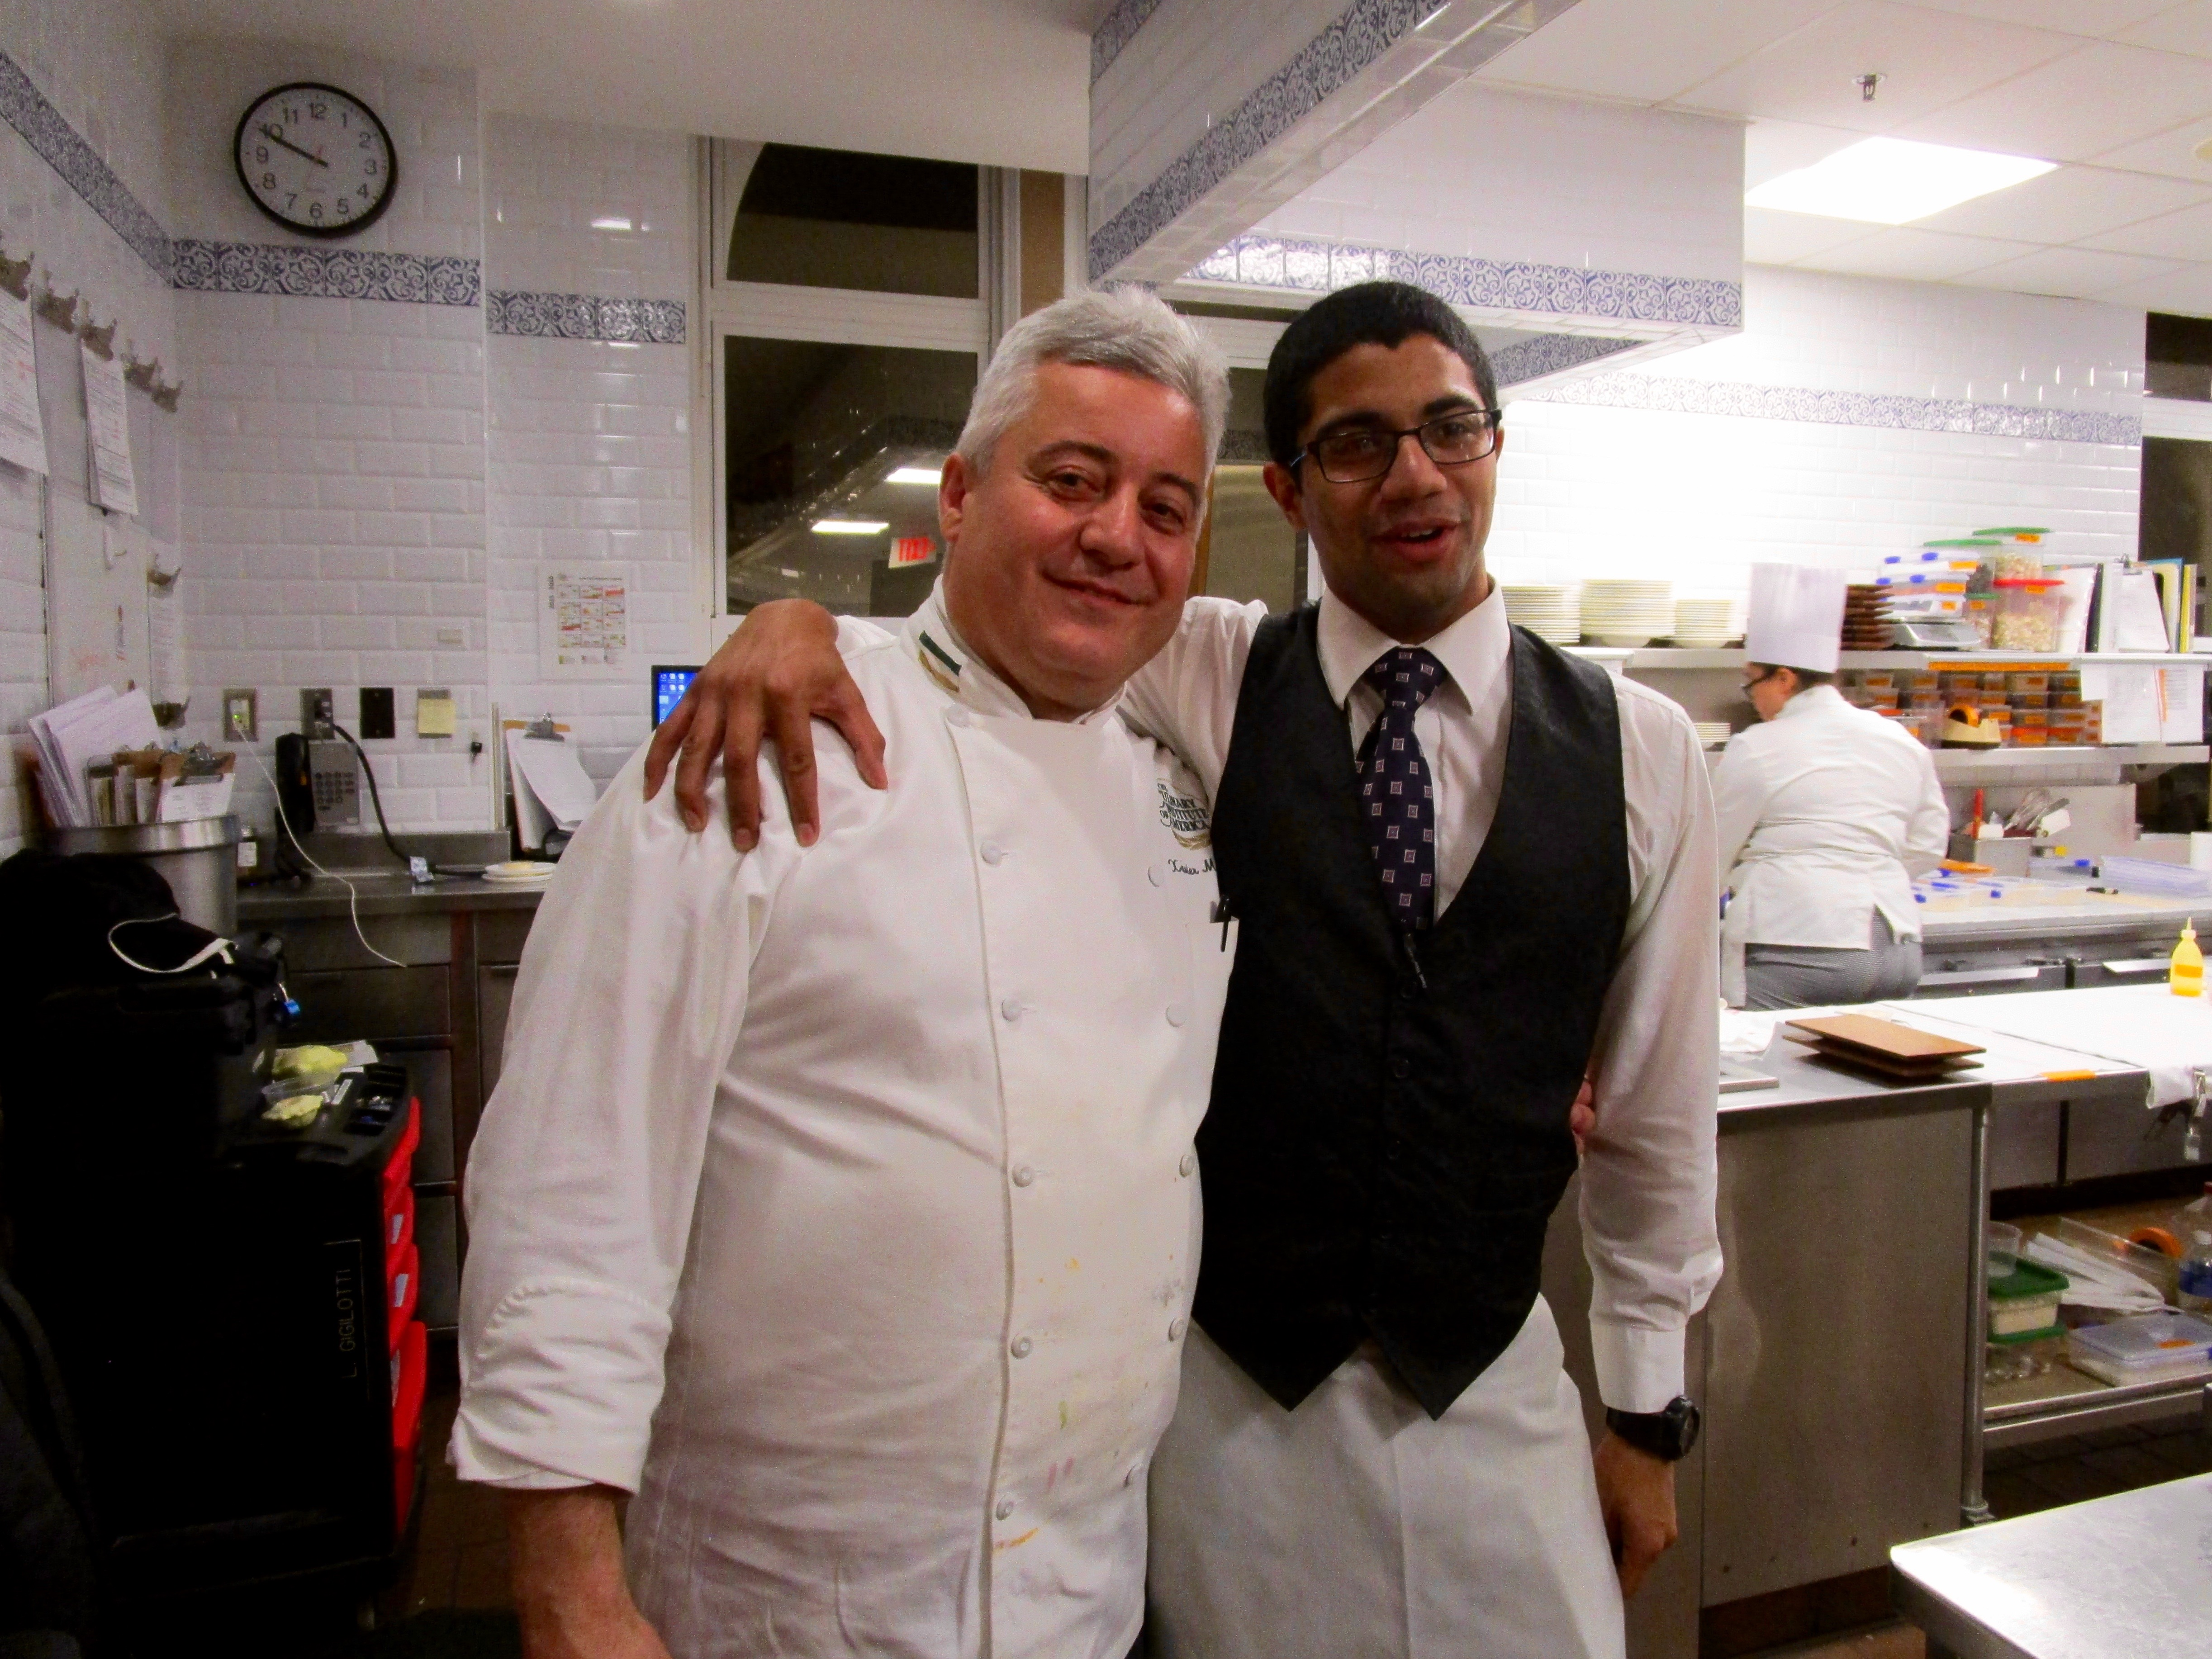 WE ALL WERE INVITED INTO THE KITCHEN FOR A TOUR (No, we didn't ask!).  THIS IS THE PROFESSOR CHEF AND OUR STUDENT WAITER.